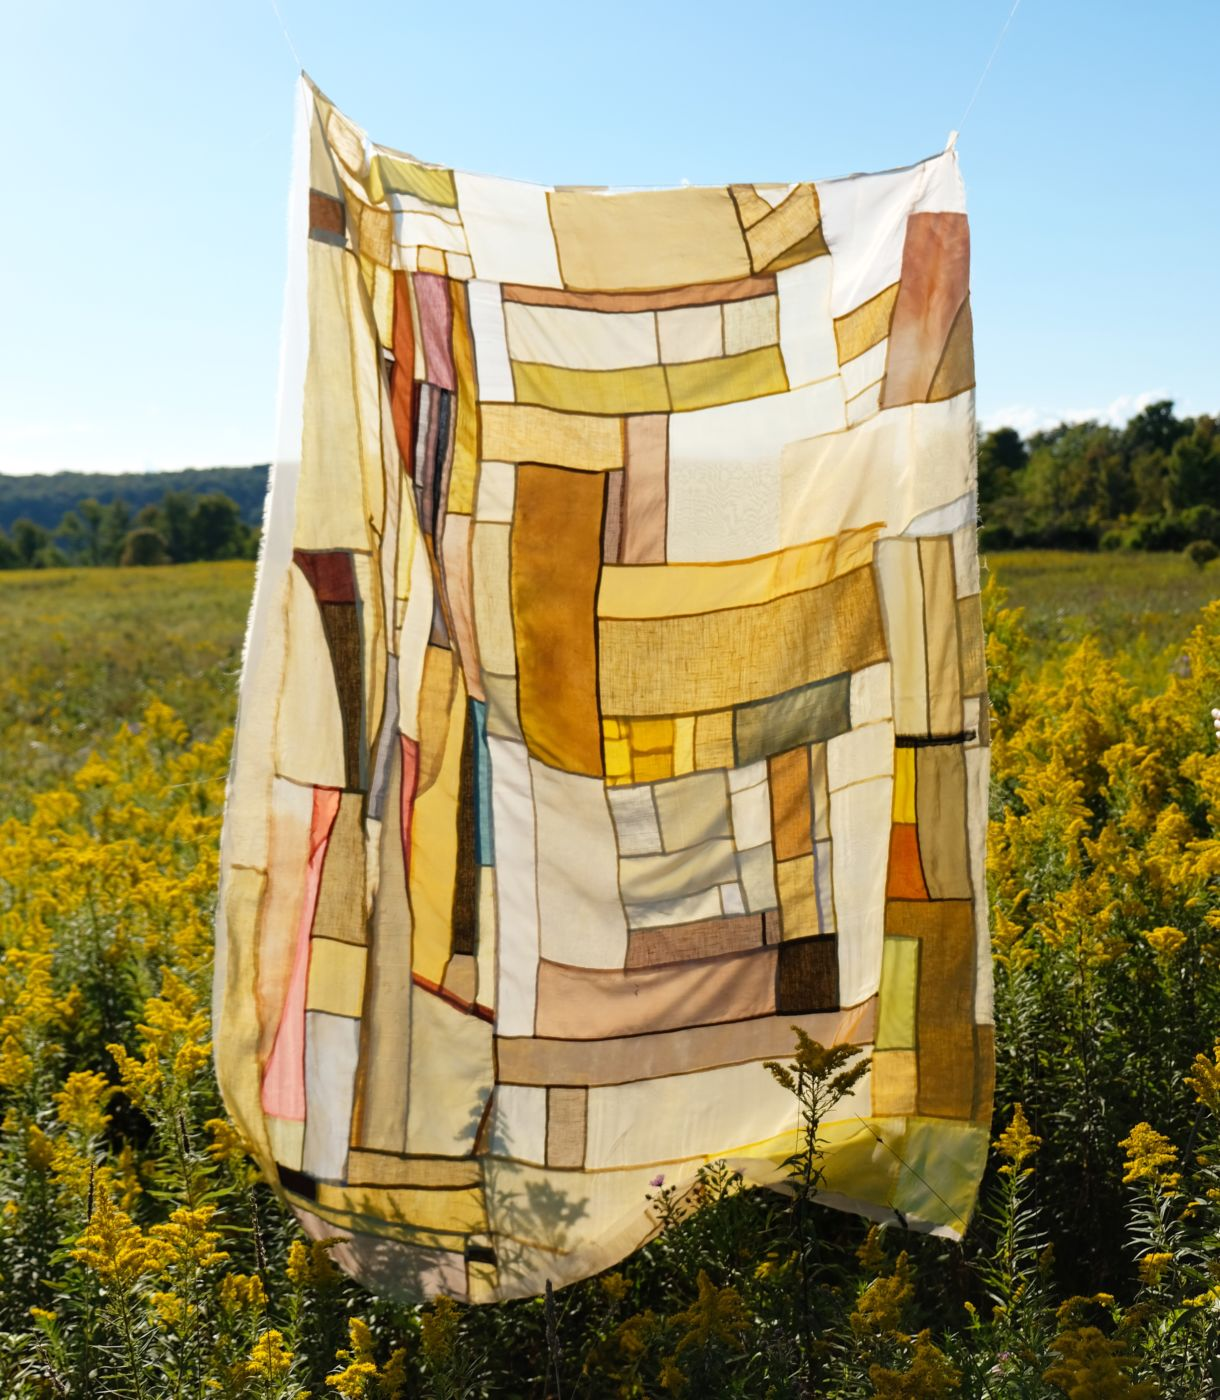 Handmade botanically dyed quilt using goldenrod, turmeric, onion, and sumac. Quilt, dyes, and photo by Kiva Motnyk of Thompson Street Studio.